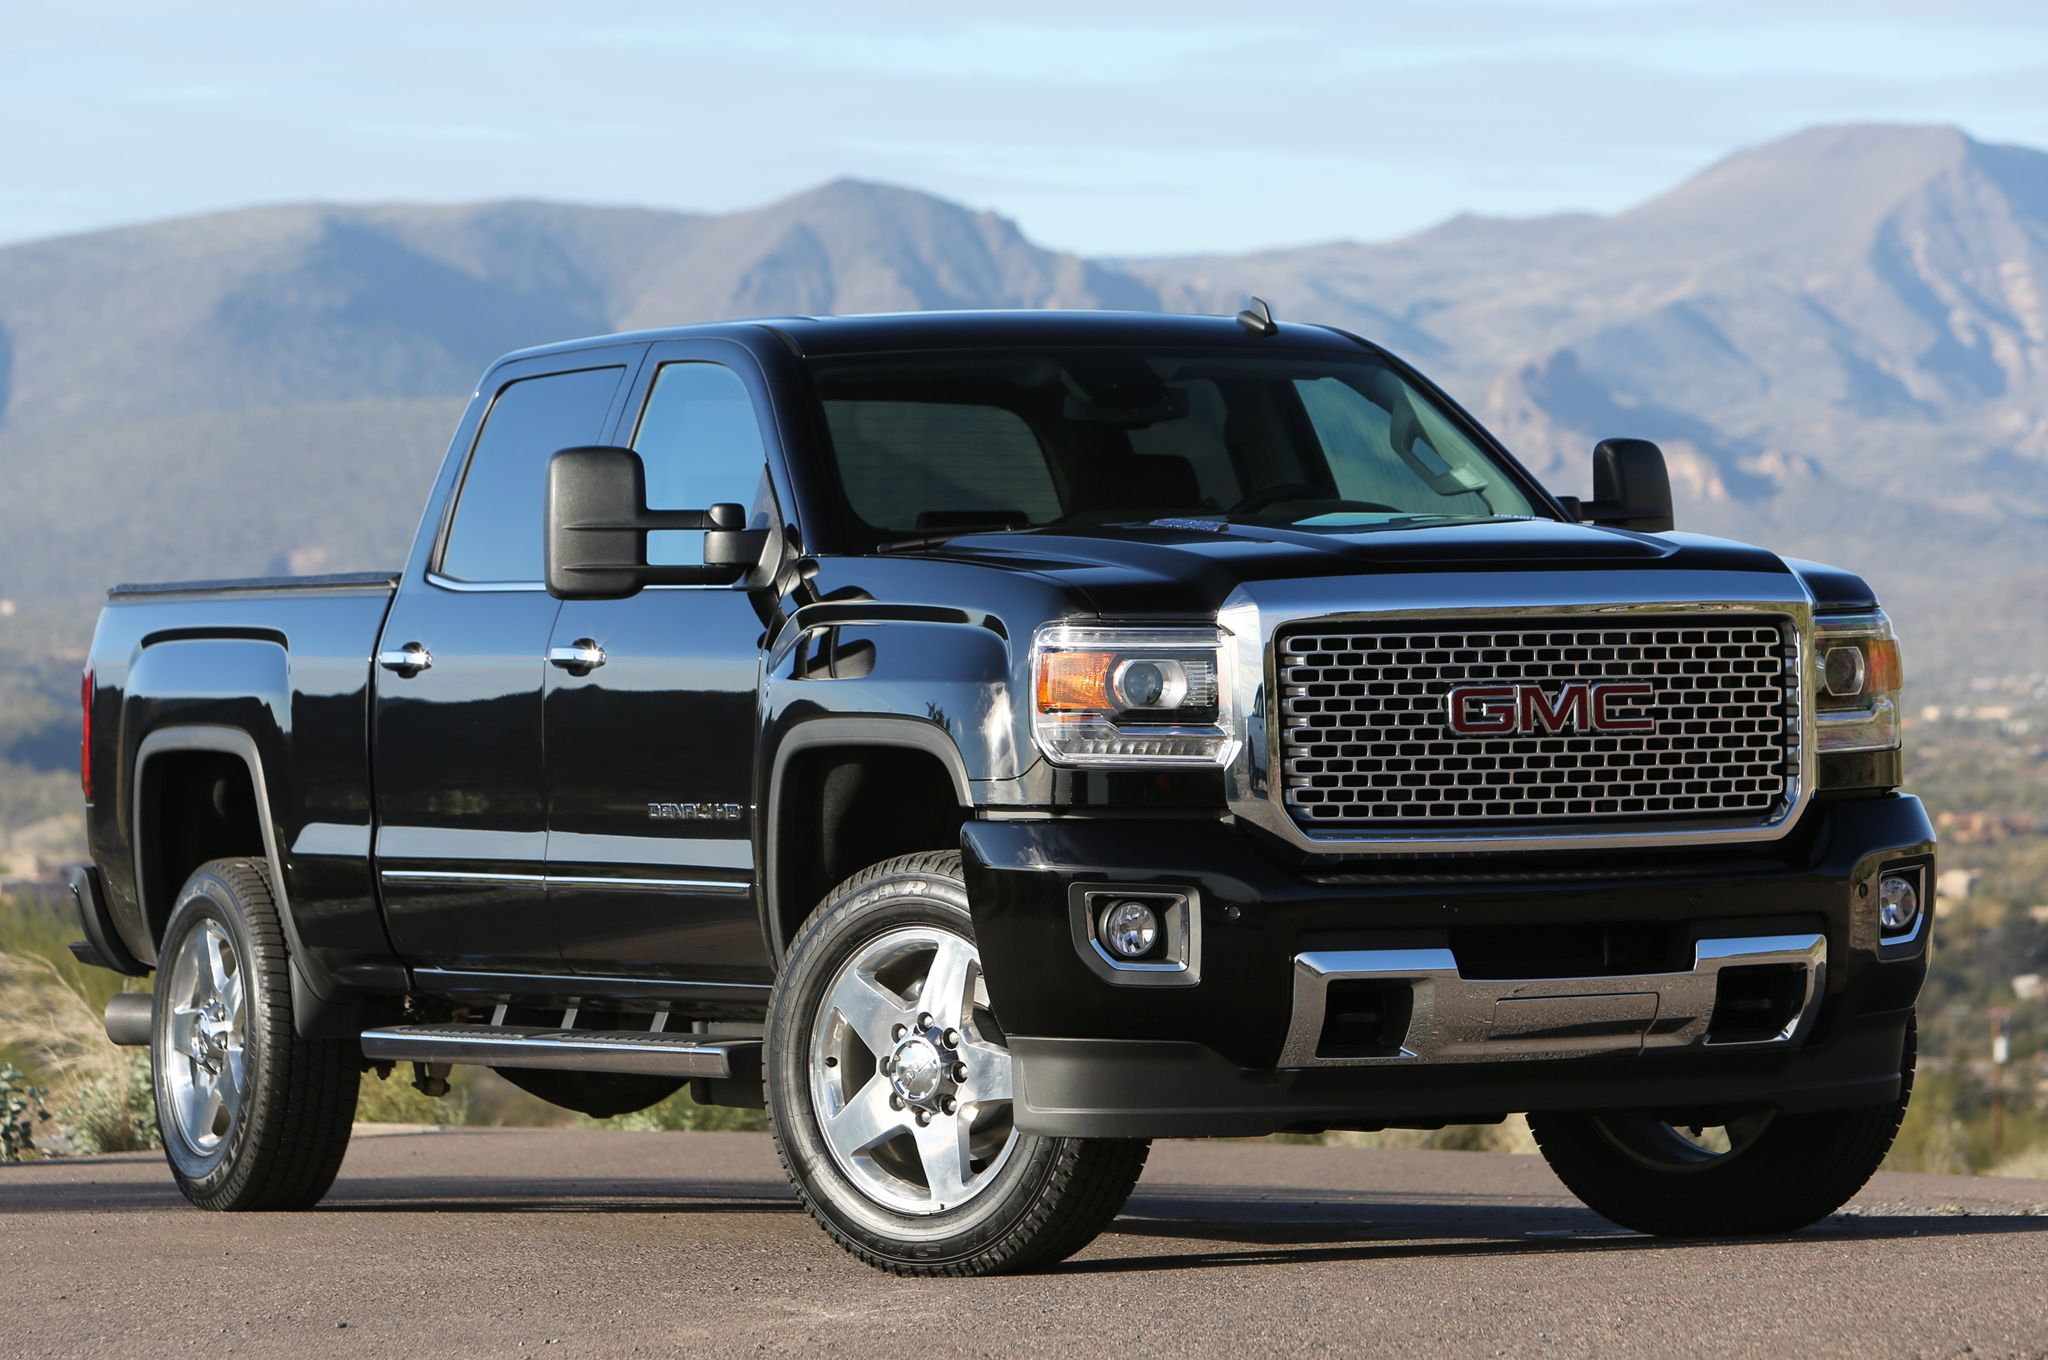 The 2015 gmc denali is amazingly powerful pick up truck suv it has a chevy twin brother named chevrolet silverado ss here are release date price